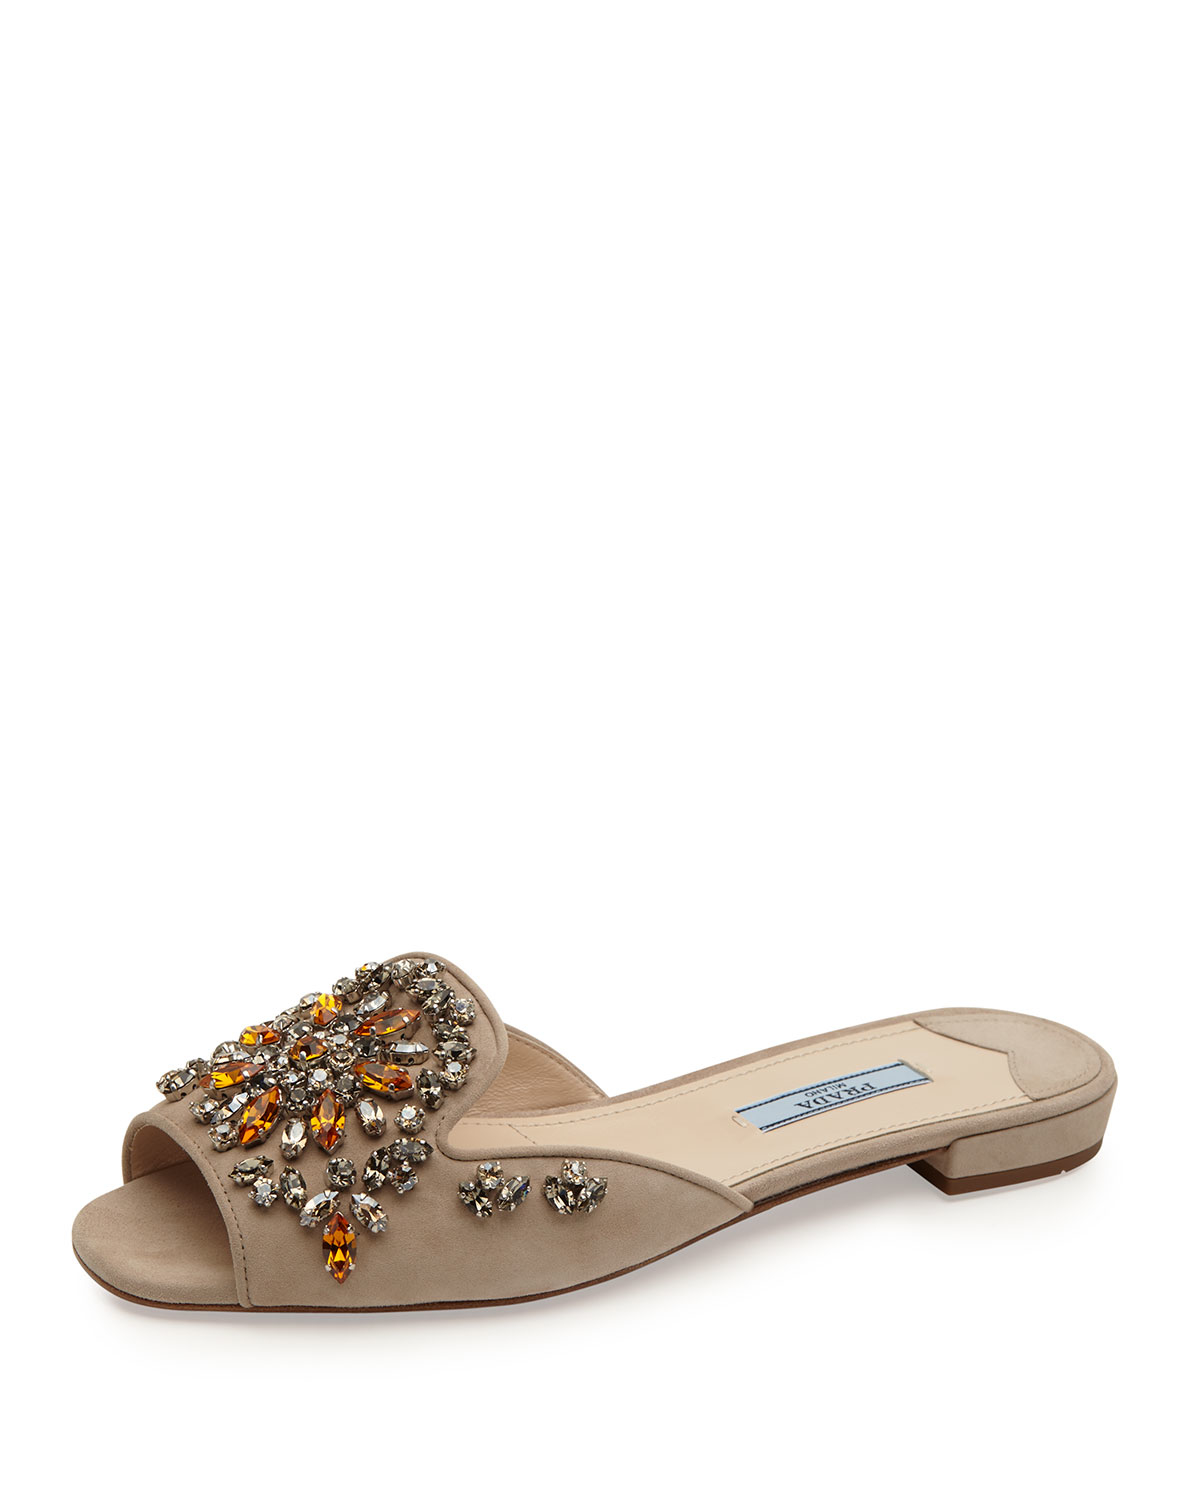 crystal studded flat slides - Red Prada